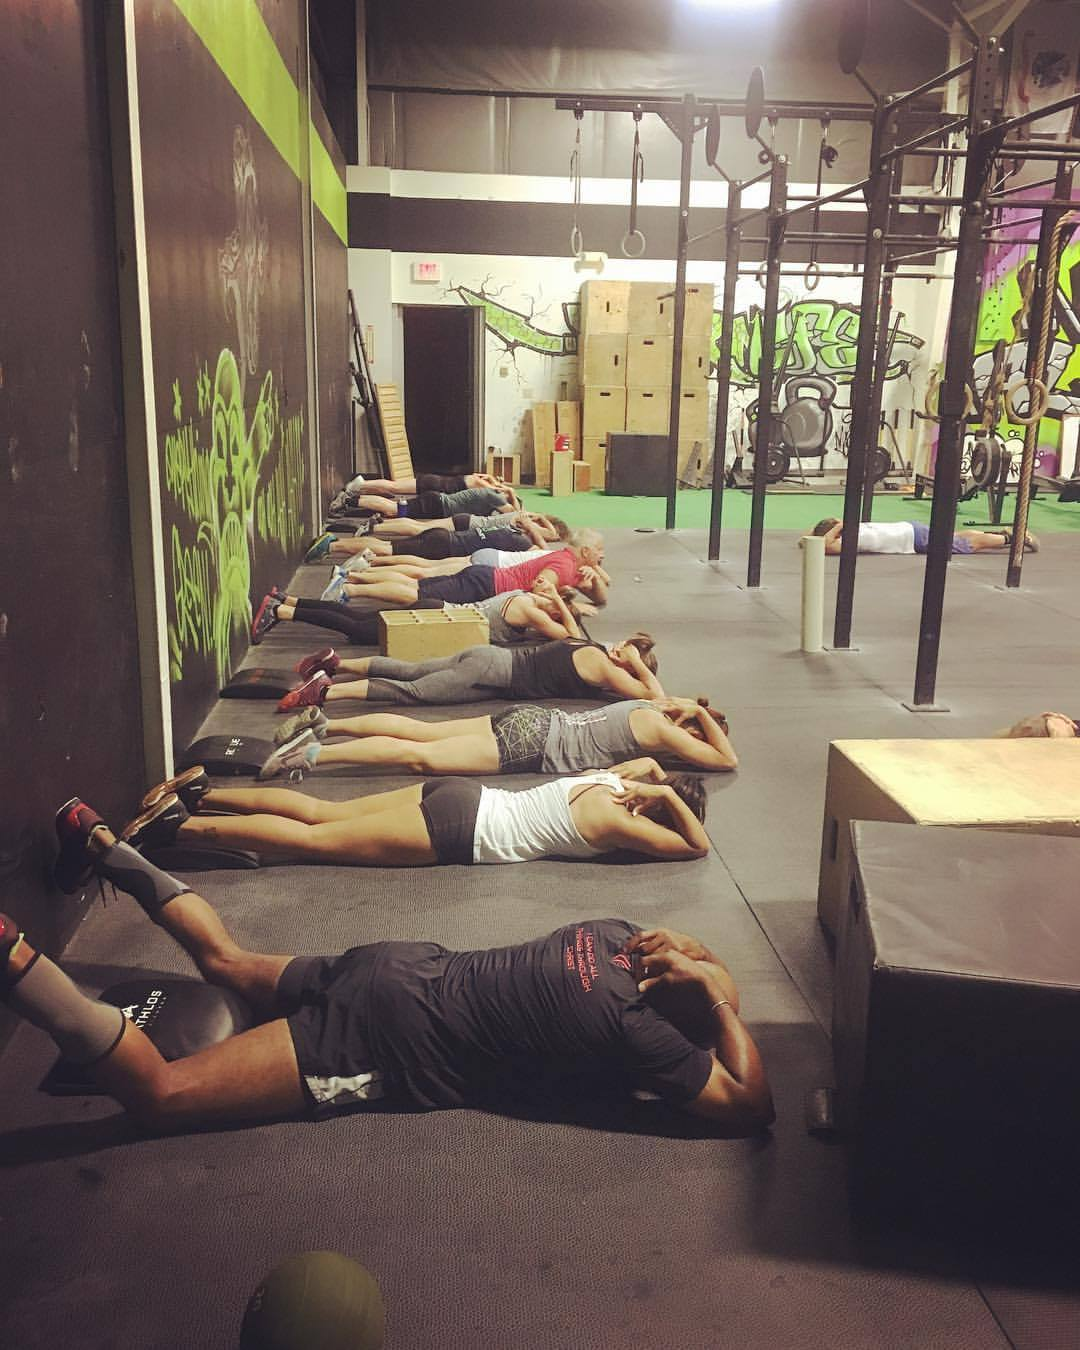 Never underestimate the power of front rack mobility and a nap at 5:30am